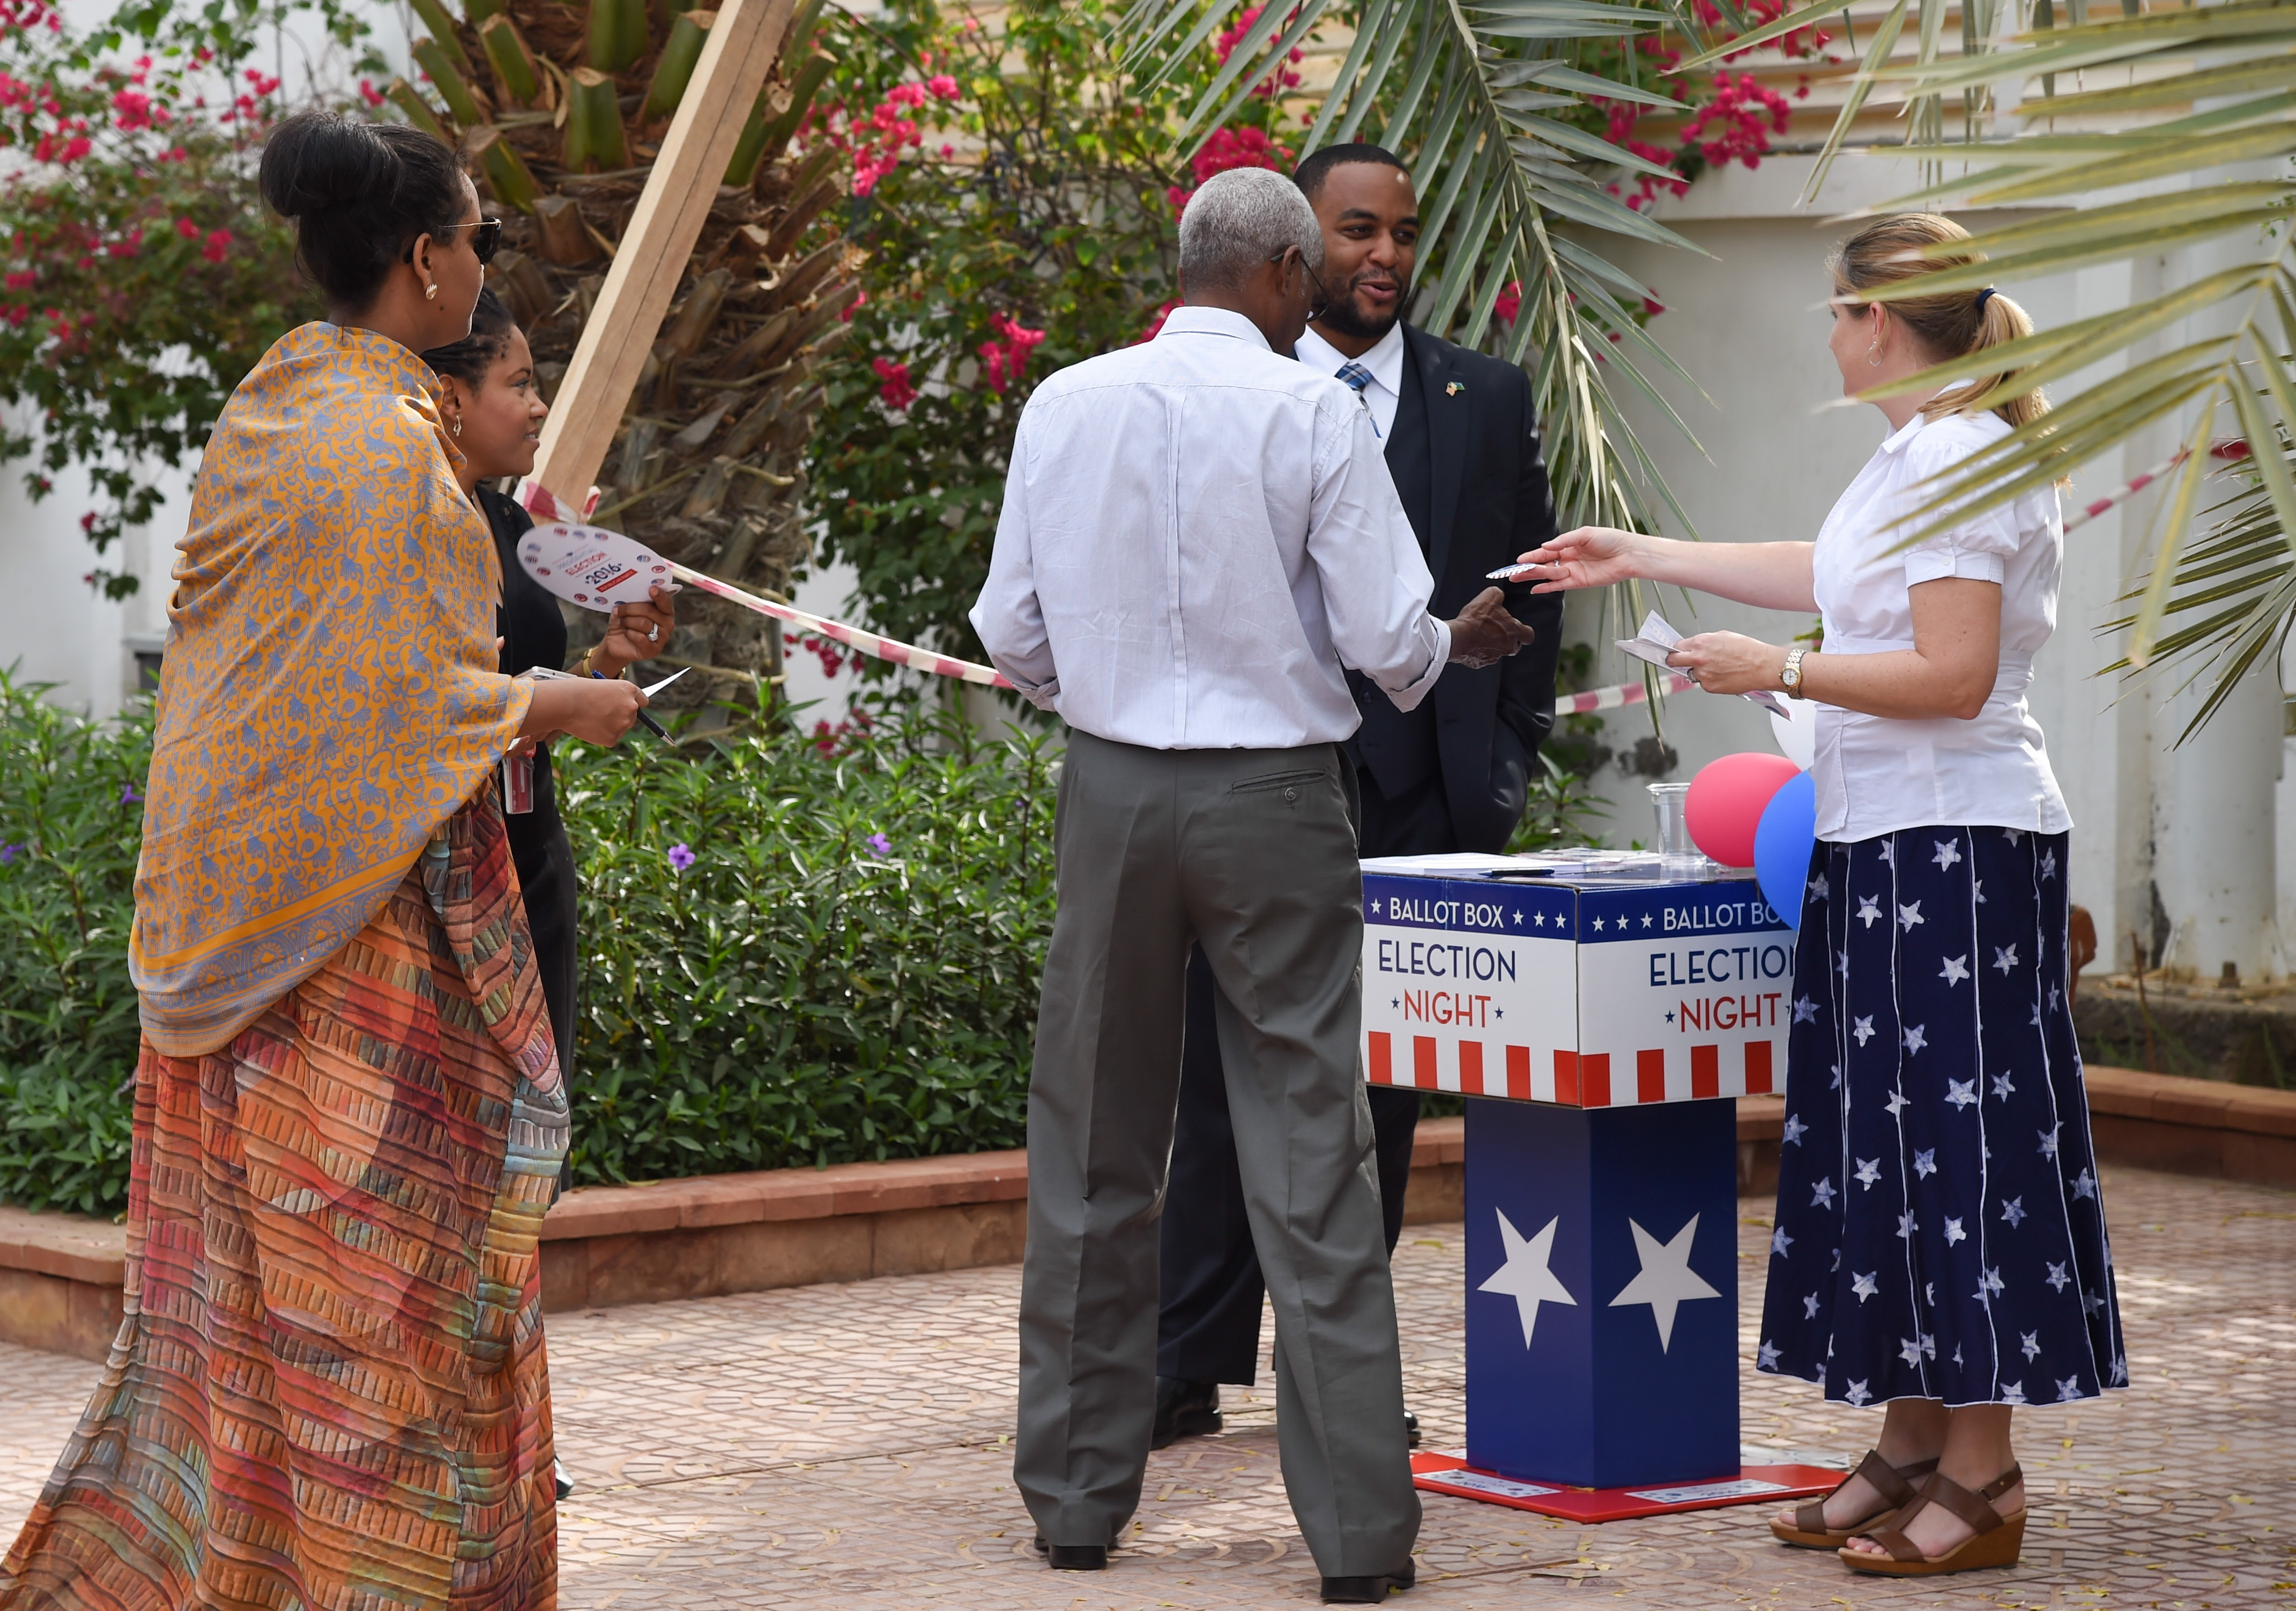 Guests of Thomas P. Kelly III, U.S. Ambassador to Djibouti, vote in a mock election held during an Election Day breakfast, Nov. 9, 2016, in Djibouti, Djibouti. The event allowed political leaders, American community members, youth leaders, and members of the business community to participate in a celebration of American values and traditions. (U.S. Air National Guard photo by Staff Sgt. Penny Snoozy)